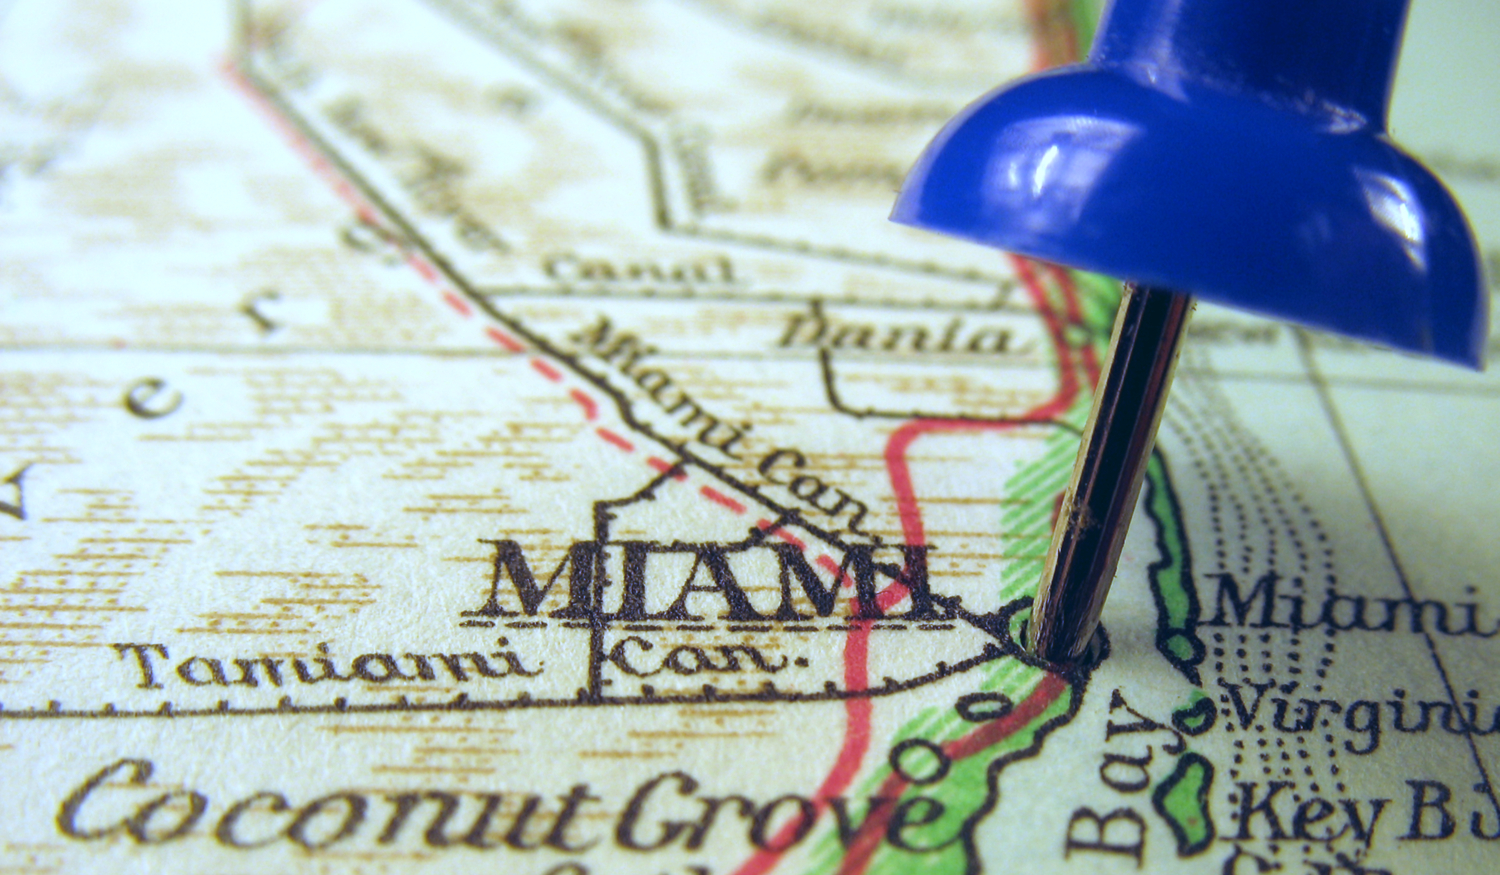 Miami pinned down on a map